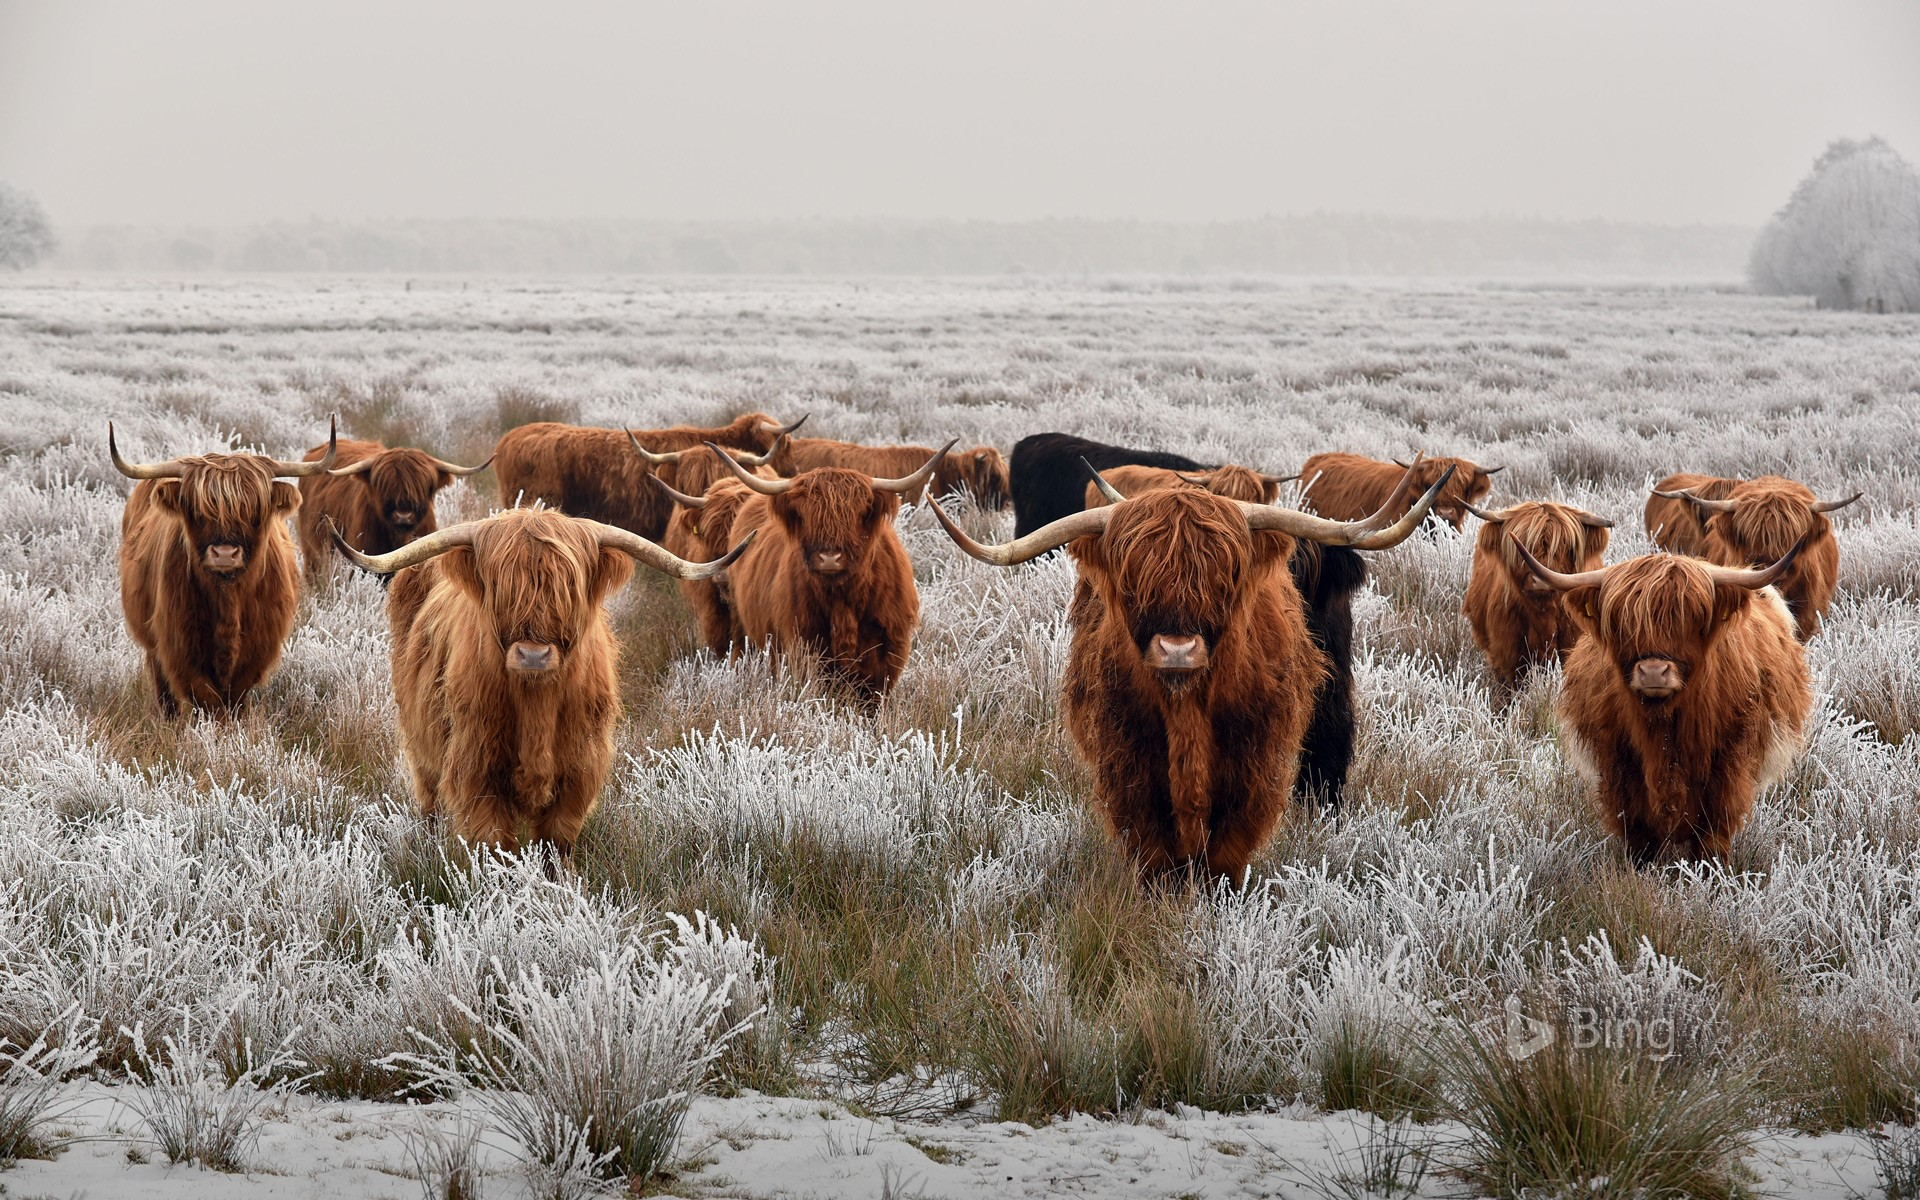 Herd of Highland cattle in winter